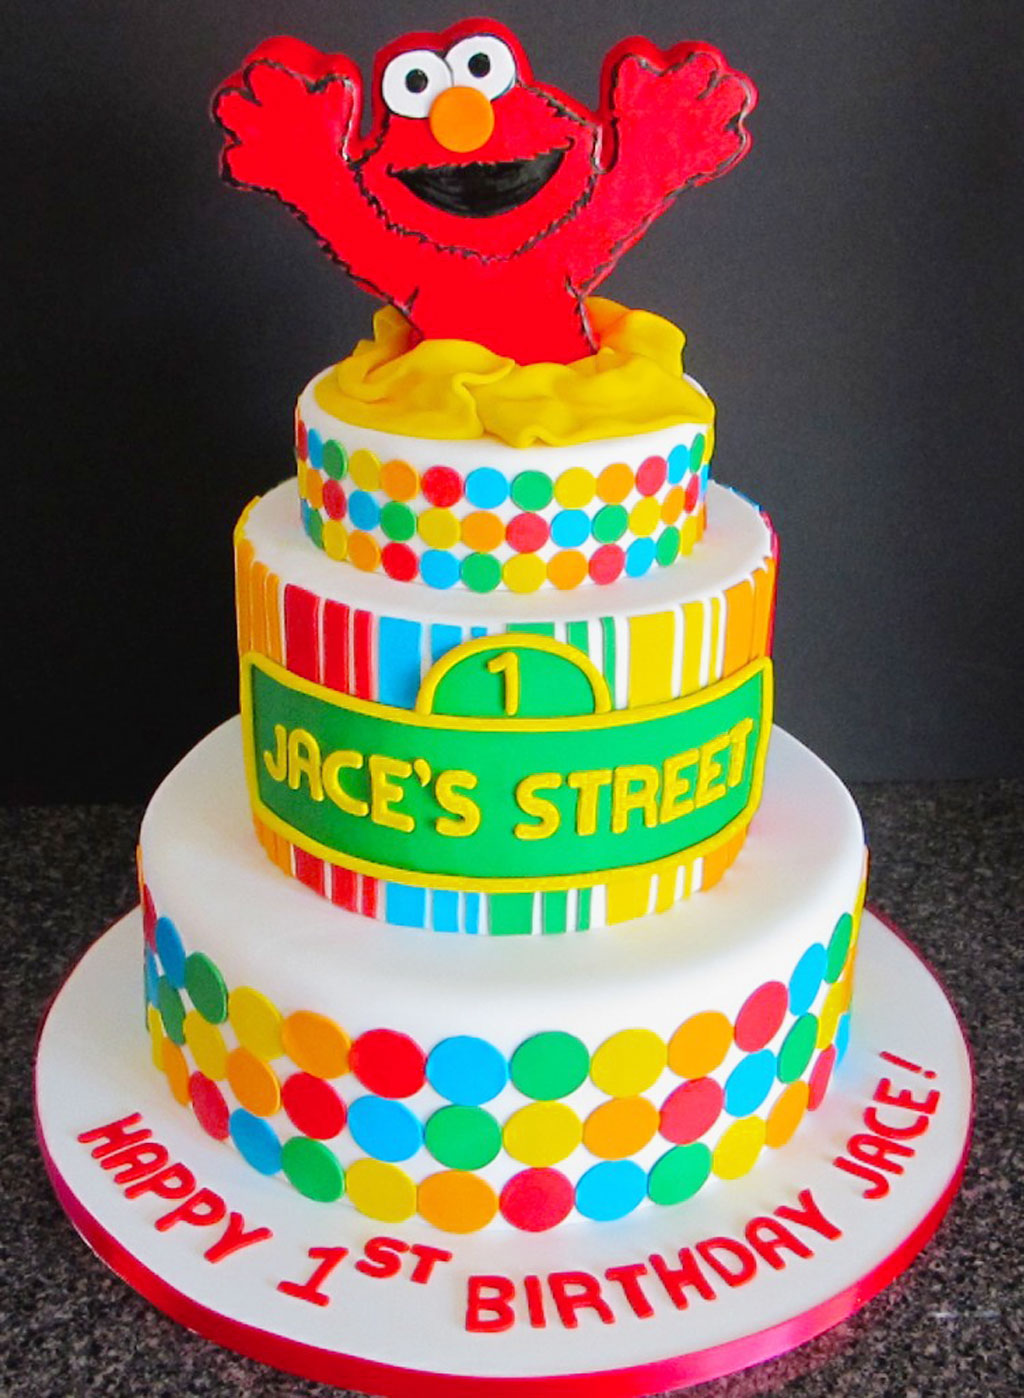 Elmo Design Birthday Cake : Elmo Birthday Cakes Design 7 Birthday Cake - Cake Ideas by ...